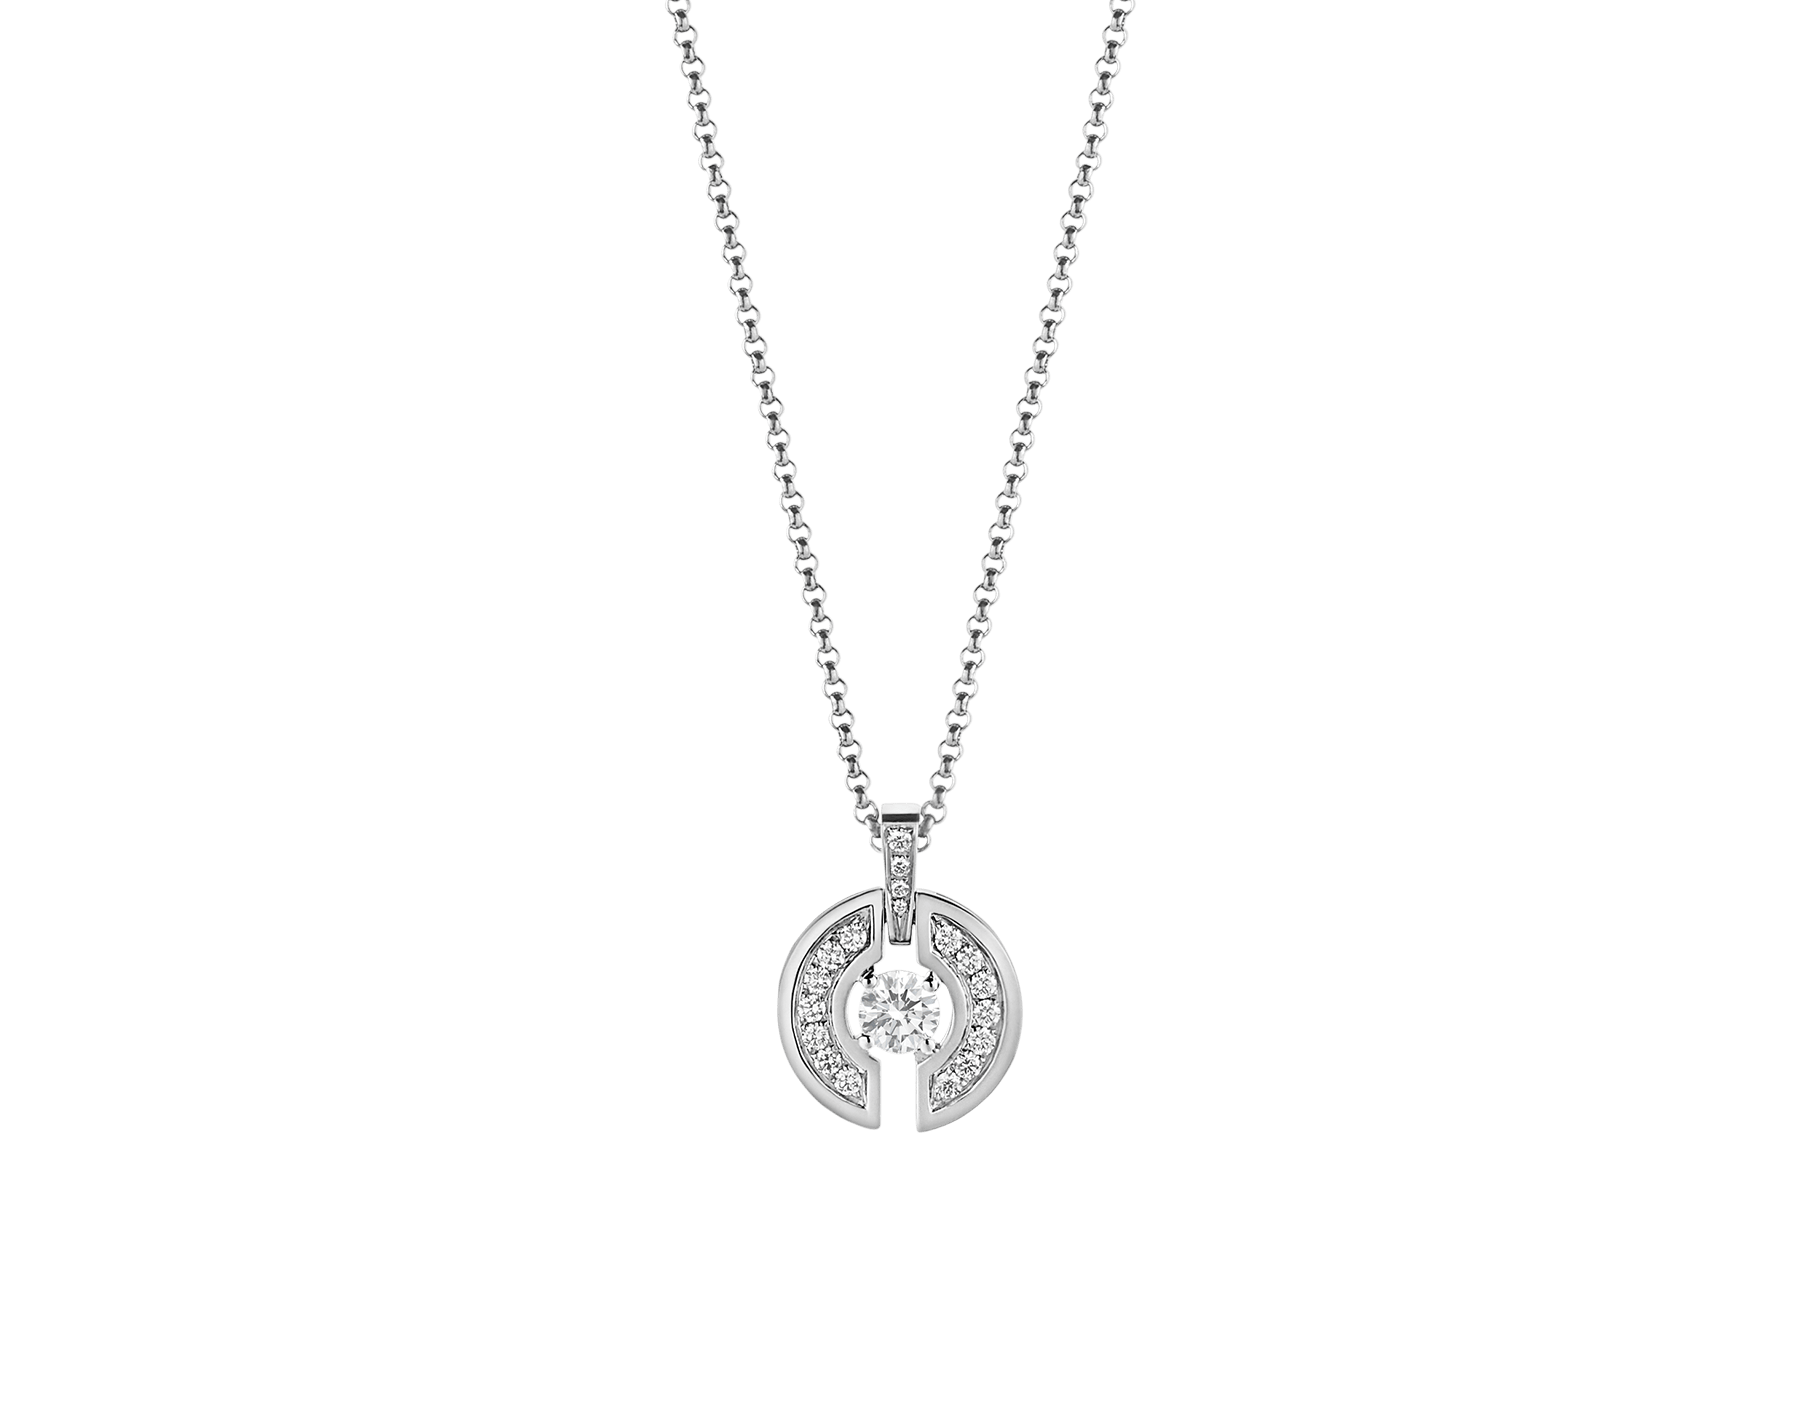 Parentesi necklace with 18 kt white gold chain and pendant, set with a central diamond and pavé diamonds. 354312 image 1